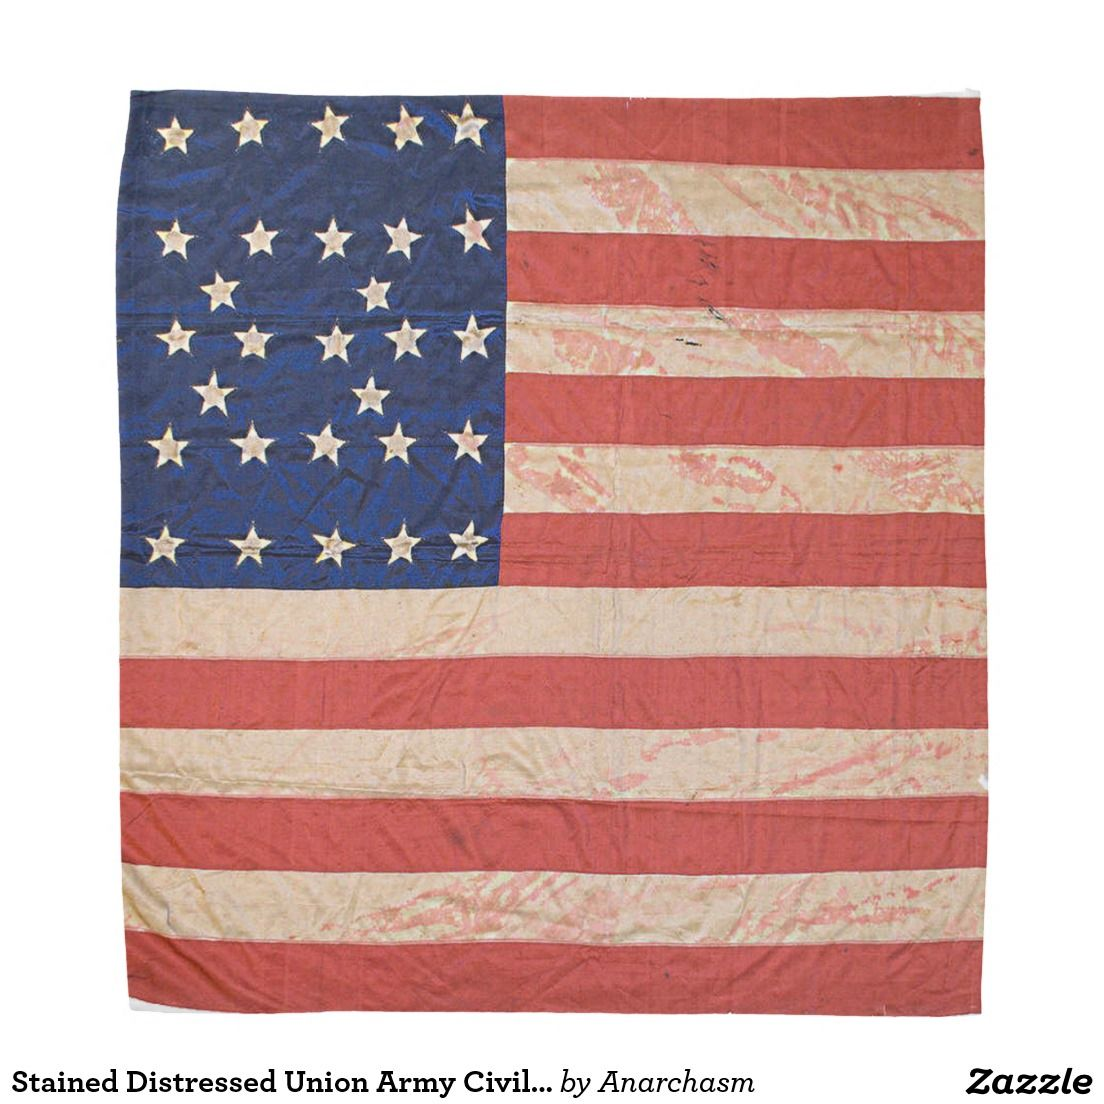 Union Army Civil War Flag Stained Distressed Bandana Zazzle Com Civil War Flags War Flag Union Army